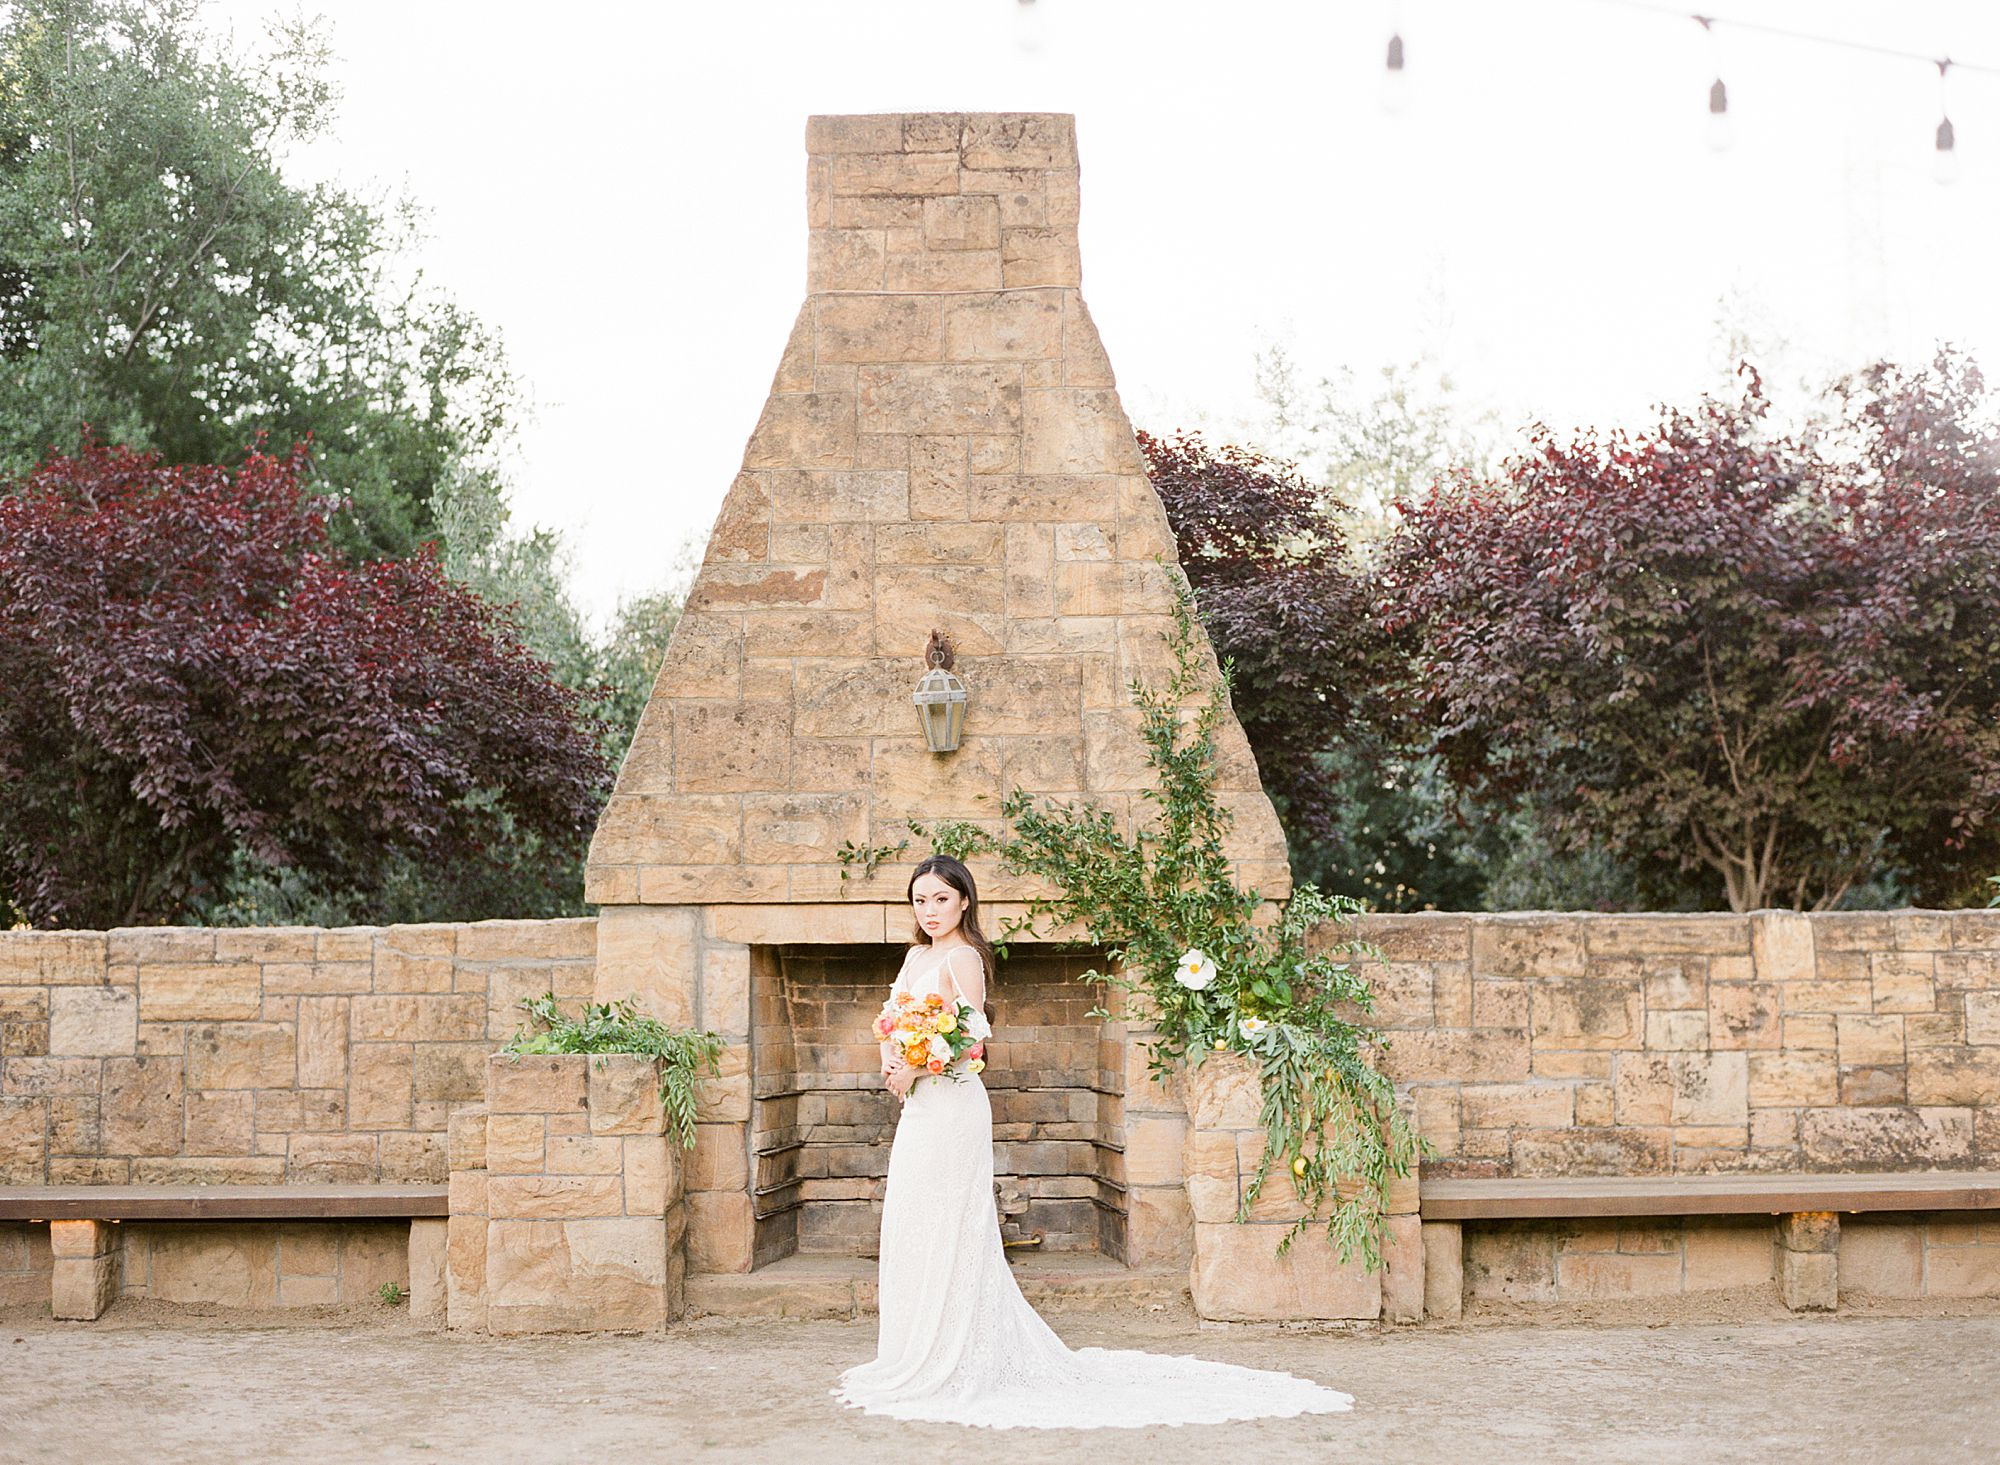 Italian Wedding Inspiration at The Maples Wedding & Event Center - Featured on Wedding Chicks - Ashley Baumgartner - Sacramento Wedding Phtoographer_0029.jpg